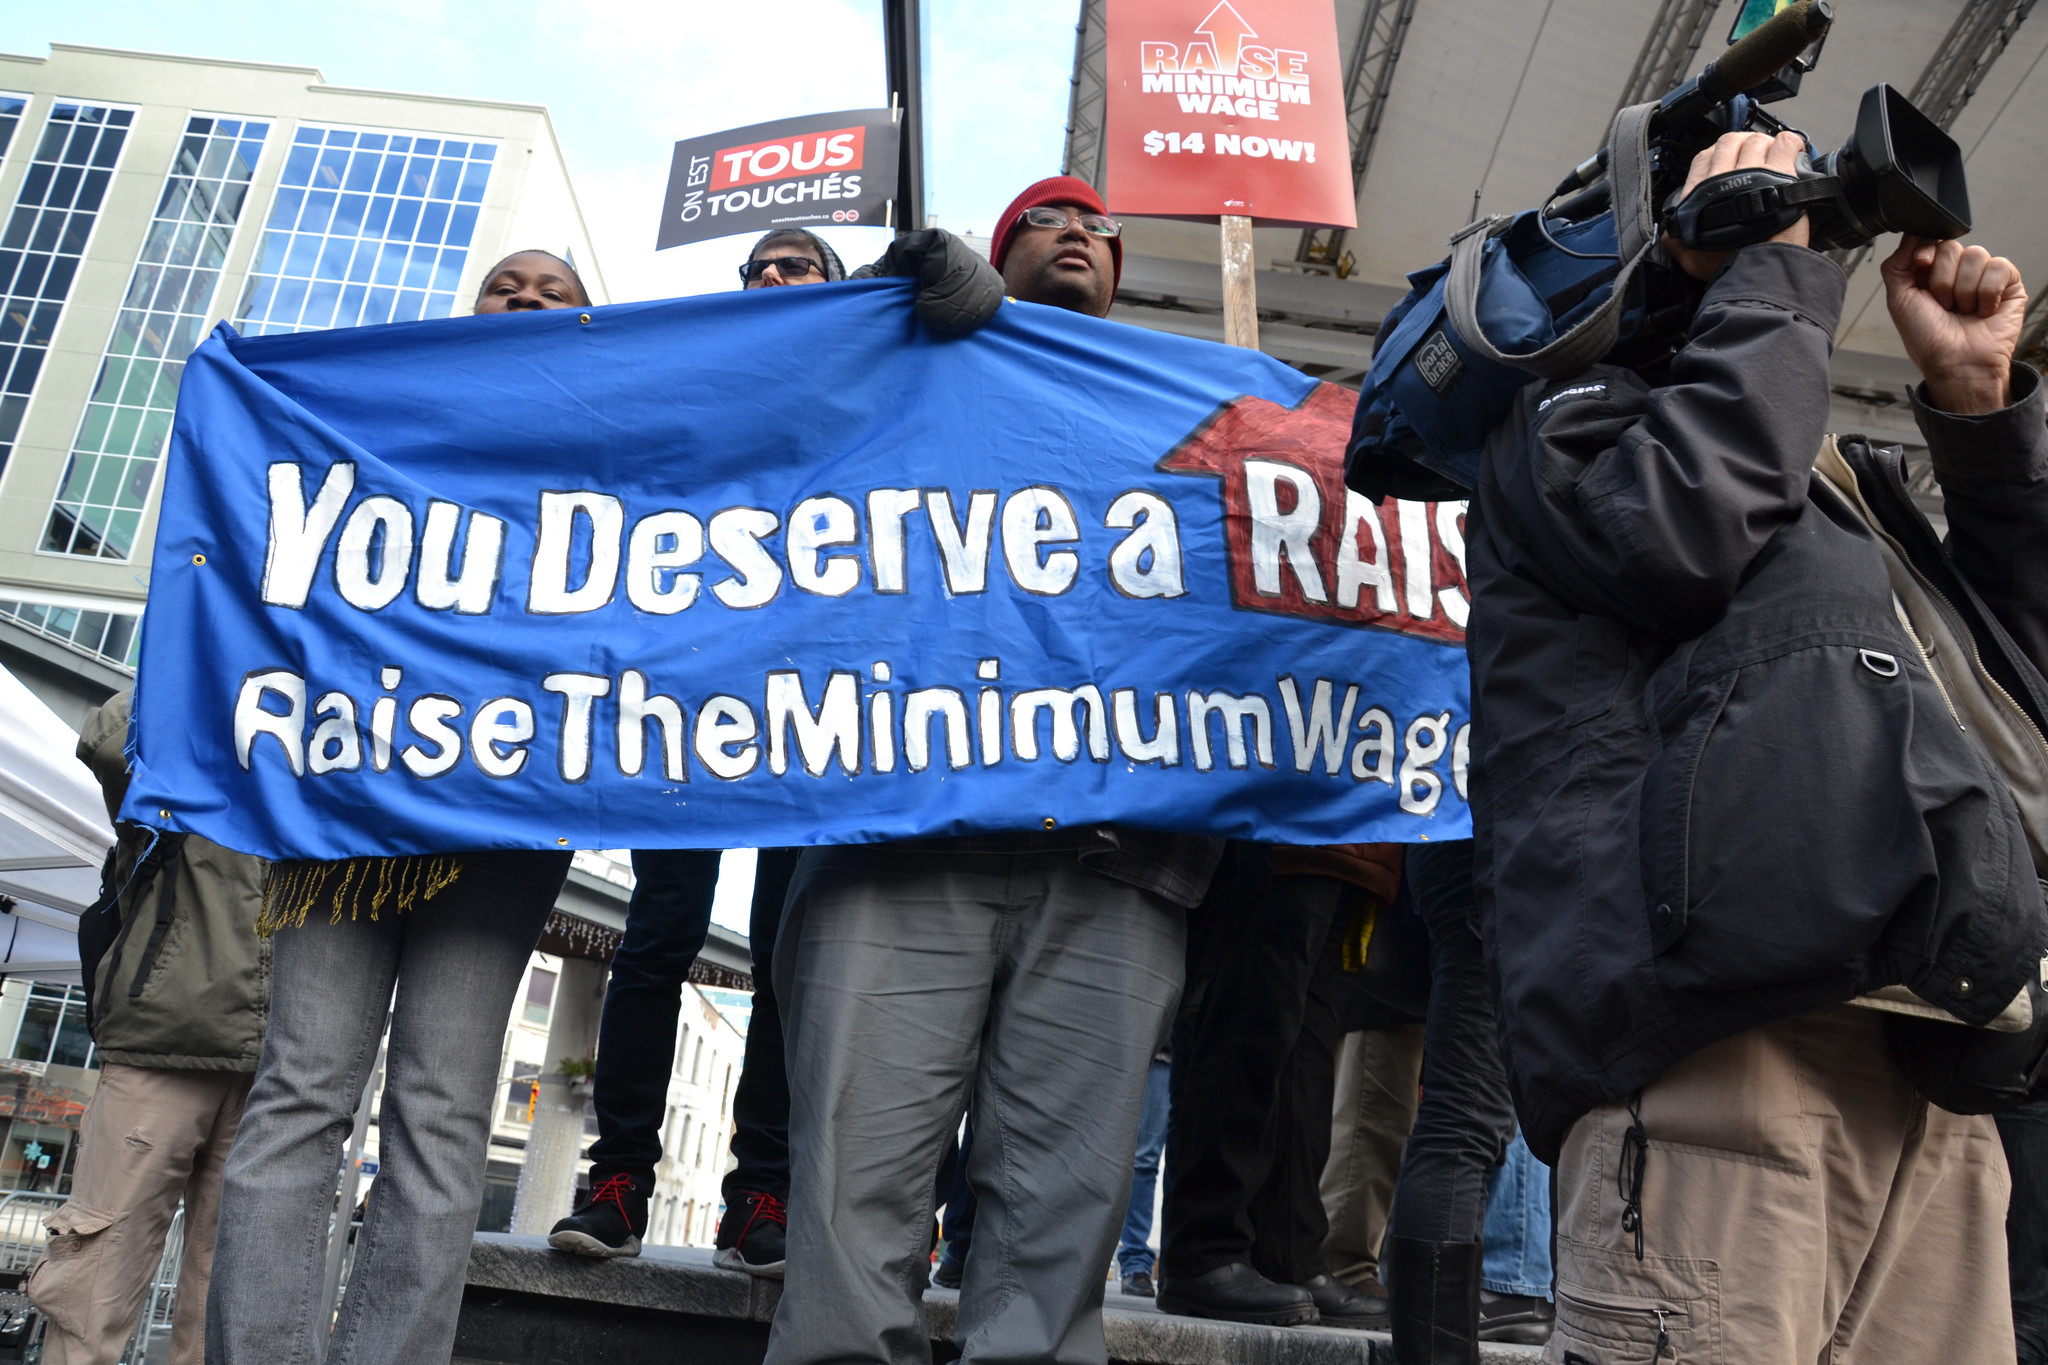 In Europe, Workers Use Minimum Wage Laws to Exclude their Competition